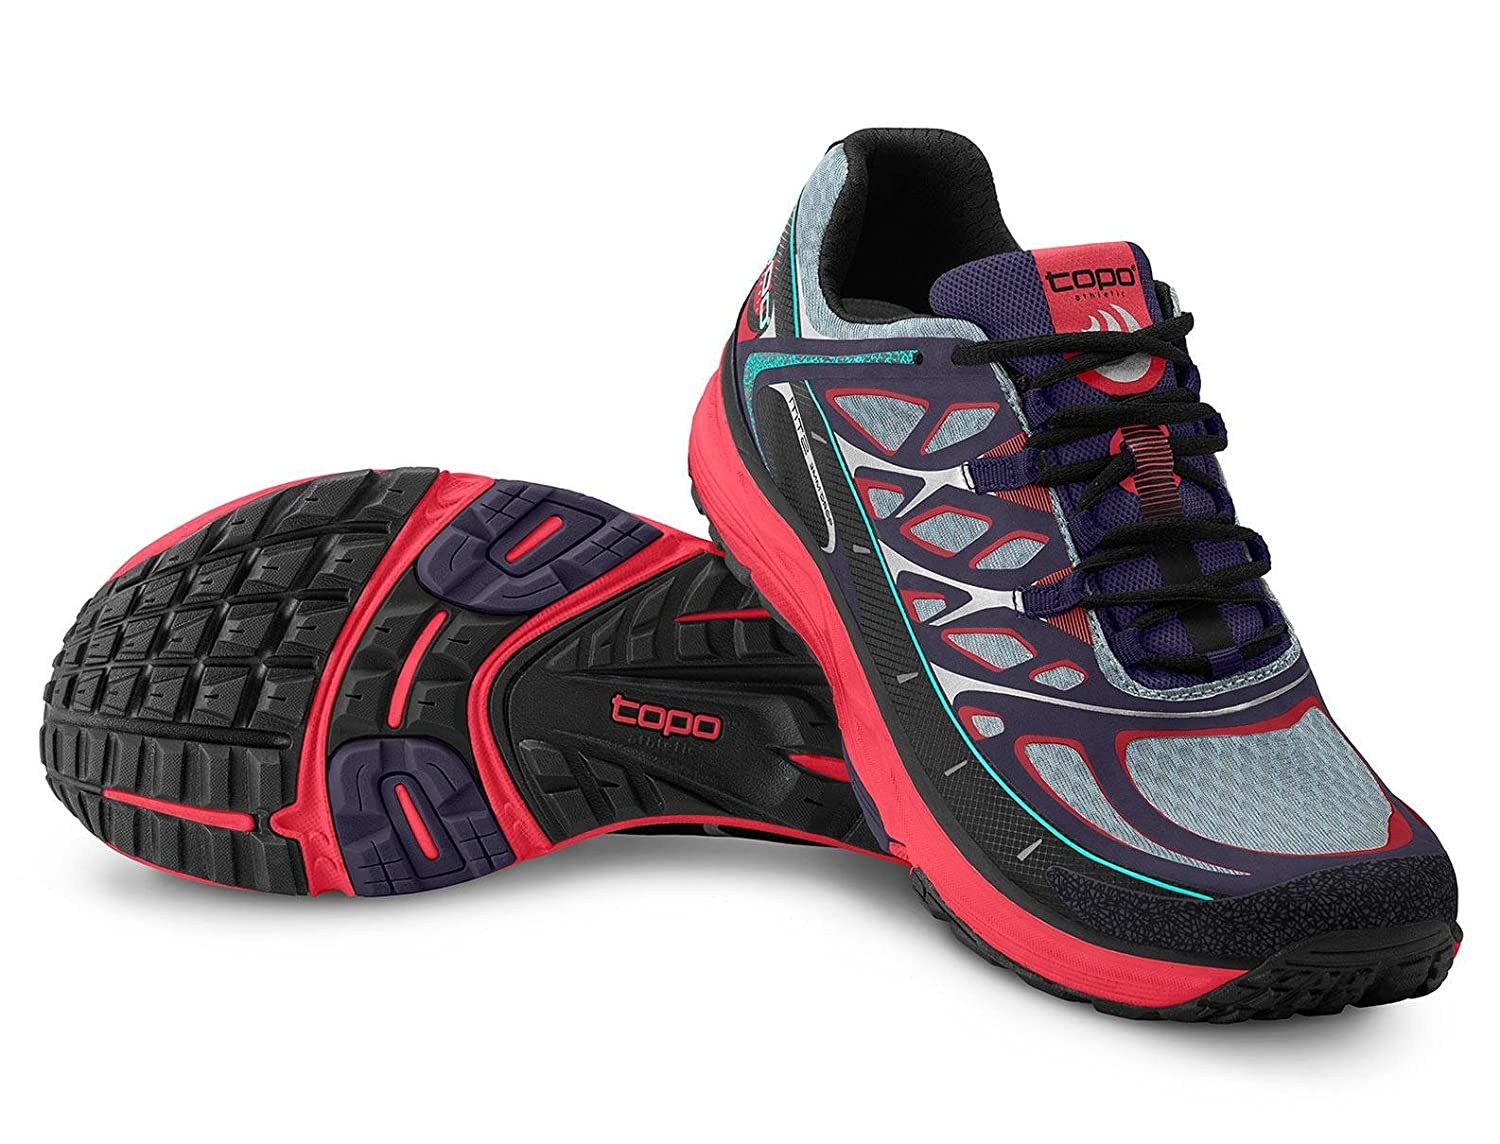 Topo Athletic MT2 Running Shoe - Men's B06XGYN619 10 B(M) US|Indigo/Fuchsia